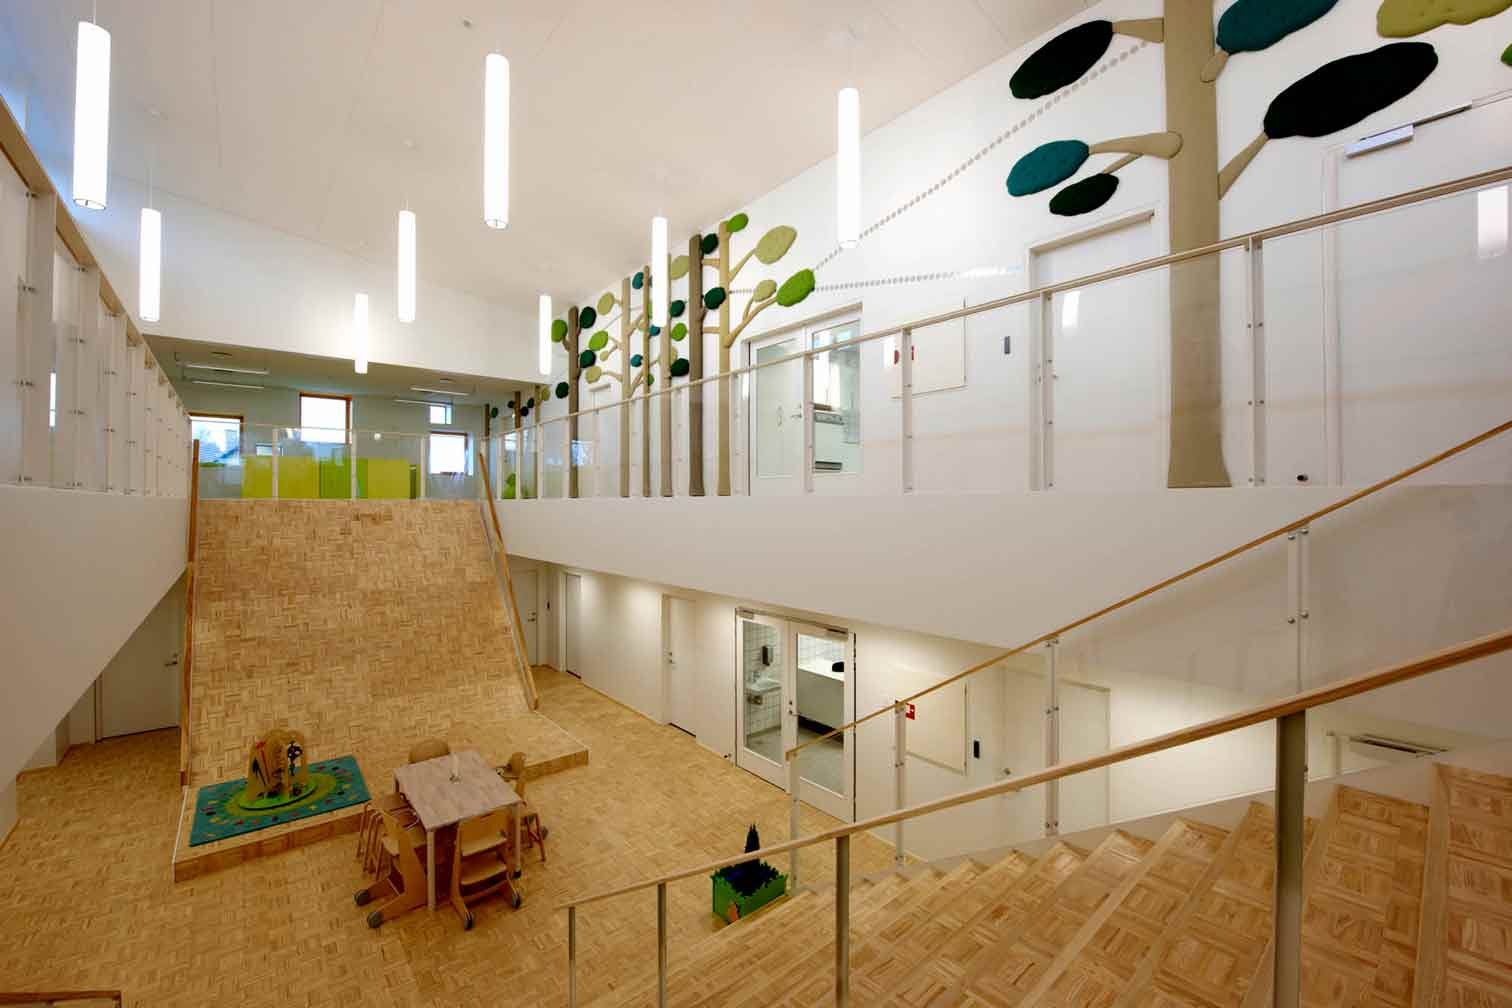 Interior view of a Passive House certified day care centre in Denmark